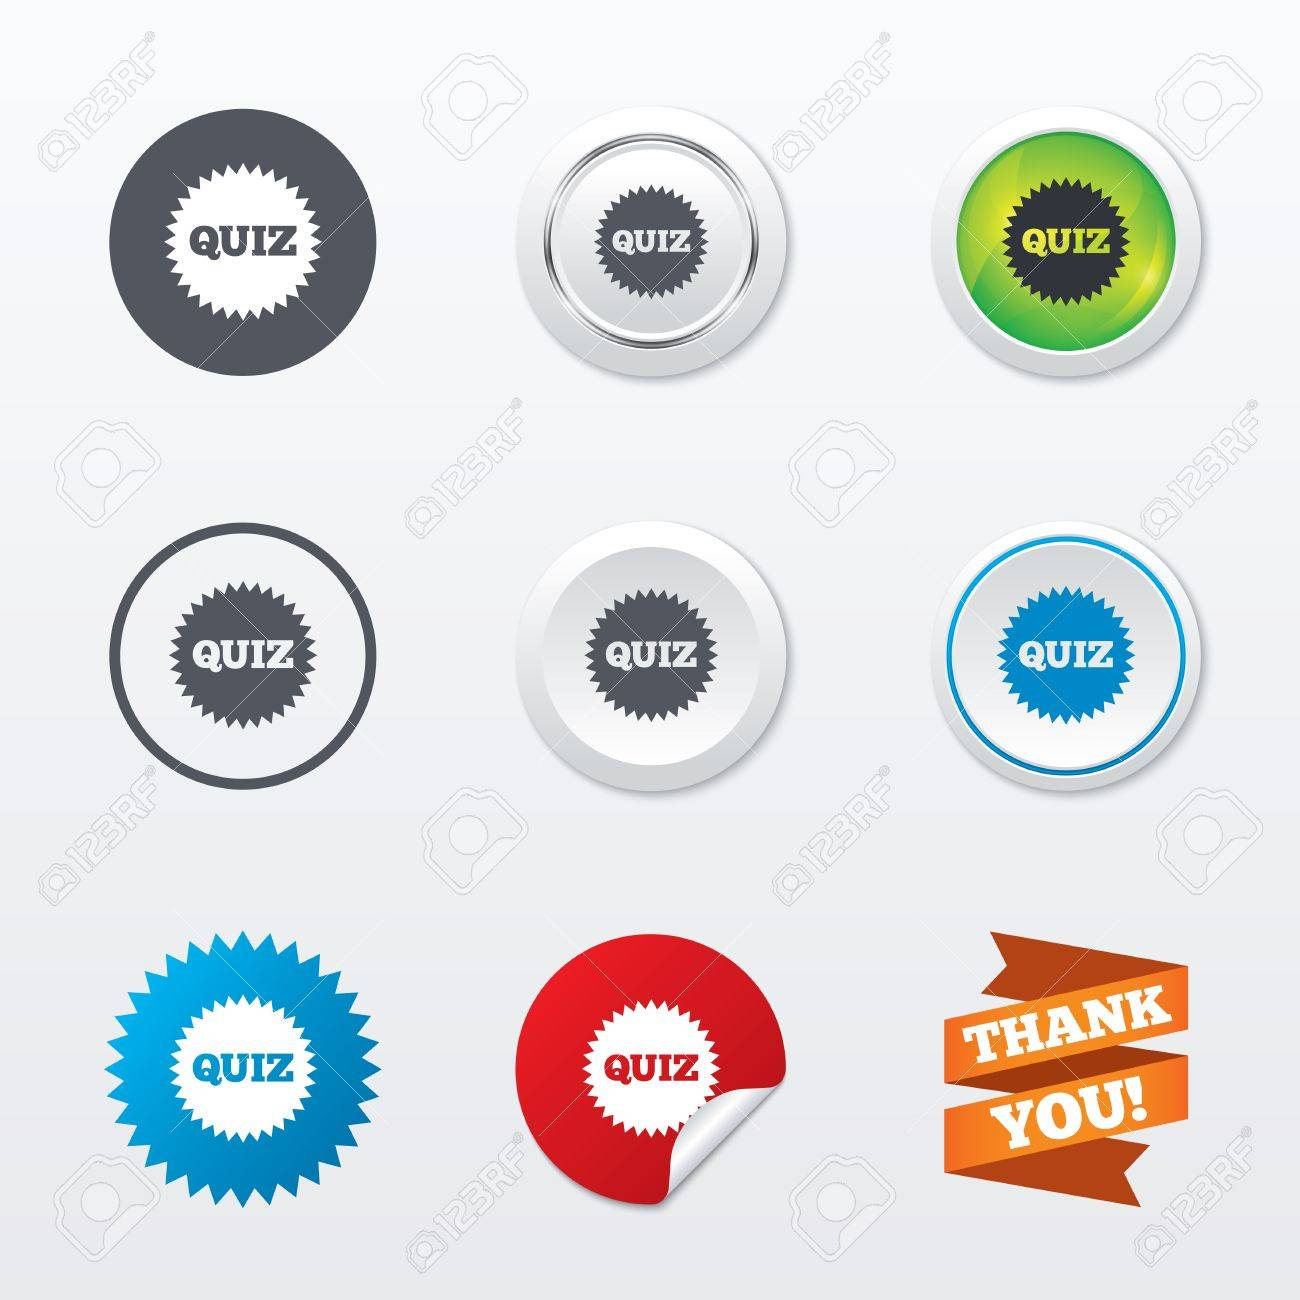 quiz star sign icon questions and answers game symbol circle quiz star sign icon questions and answers game symbol circle concept buttons metal